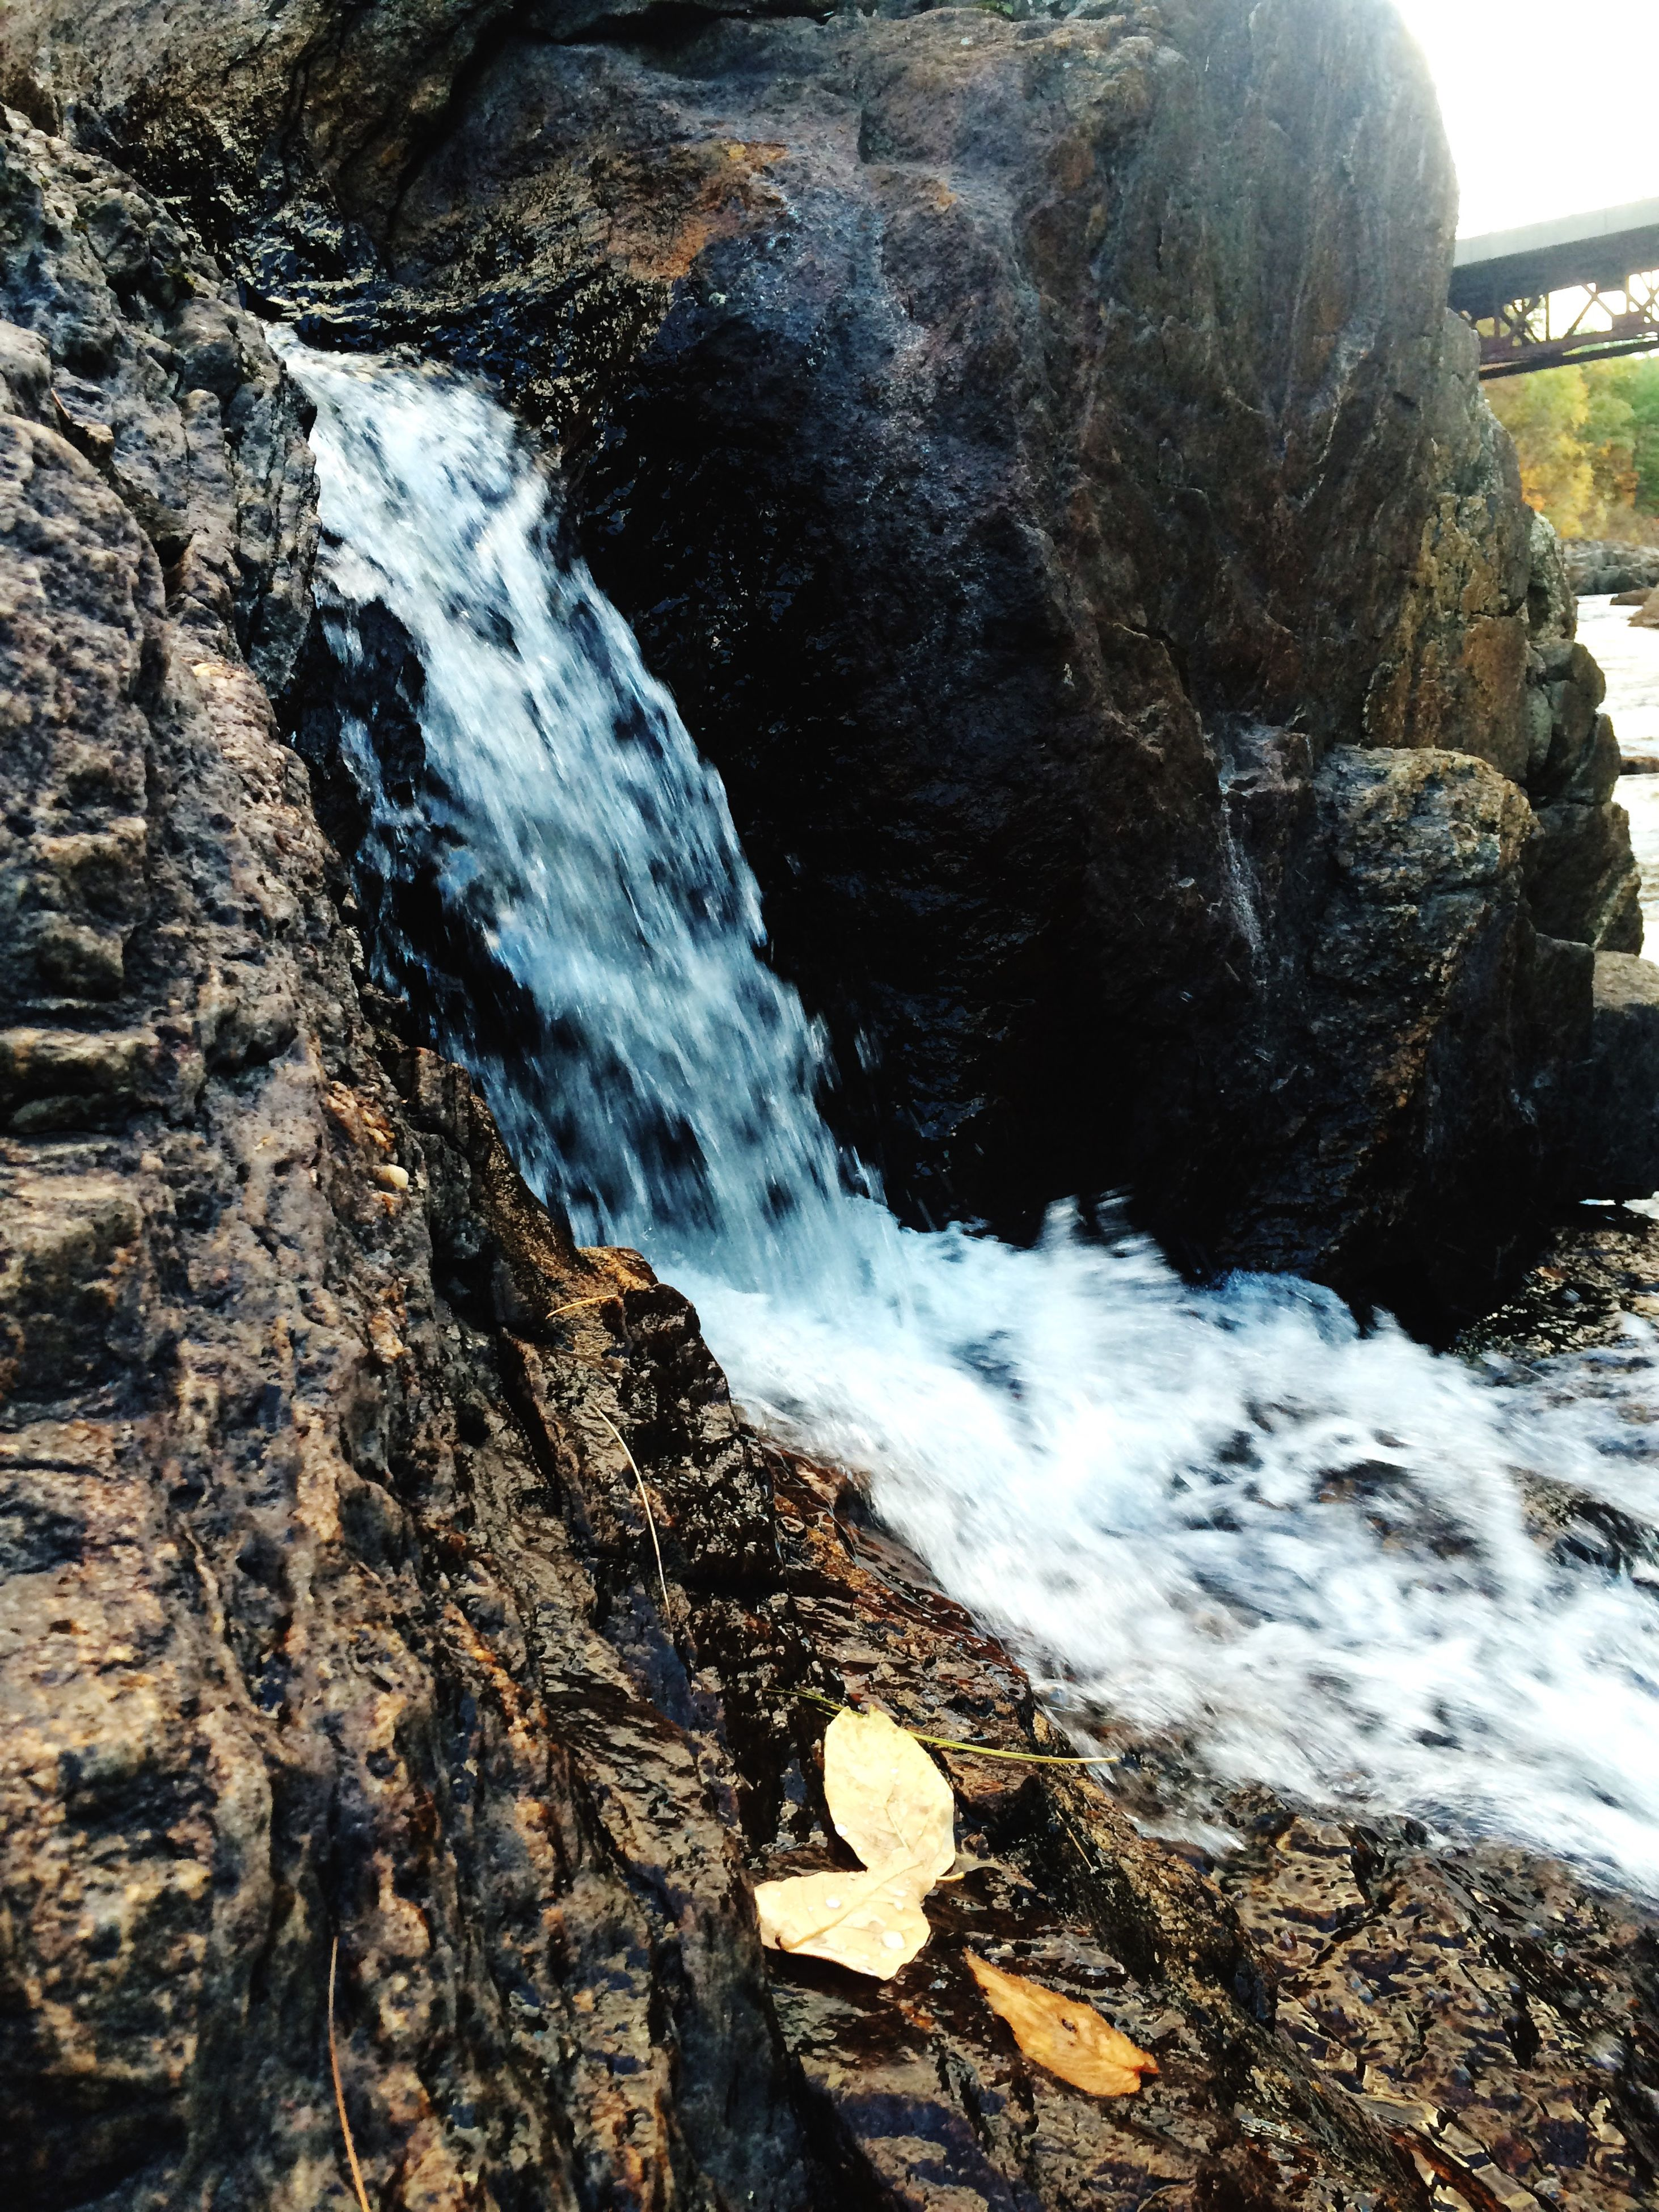 water, motion, surf, flowing water, rock - object, nature, beauty in nature, splashing, wave, long exposure, flowing, sea, scenics, waterfall, rock formation, outdoors, day, no people, high angle view, river